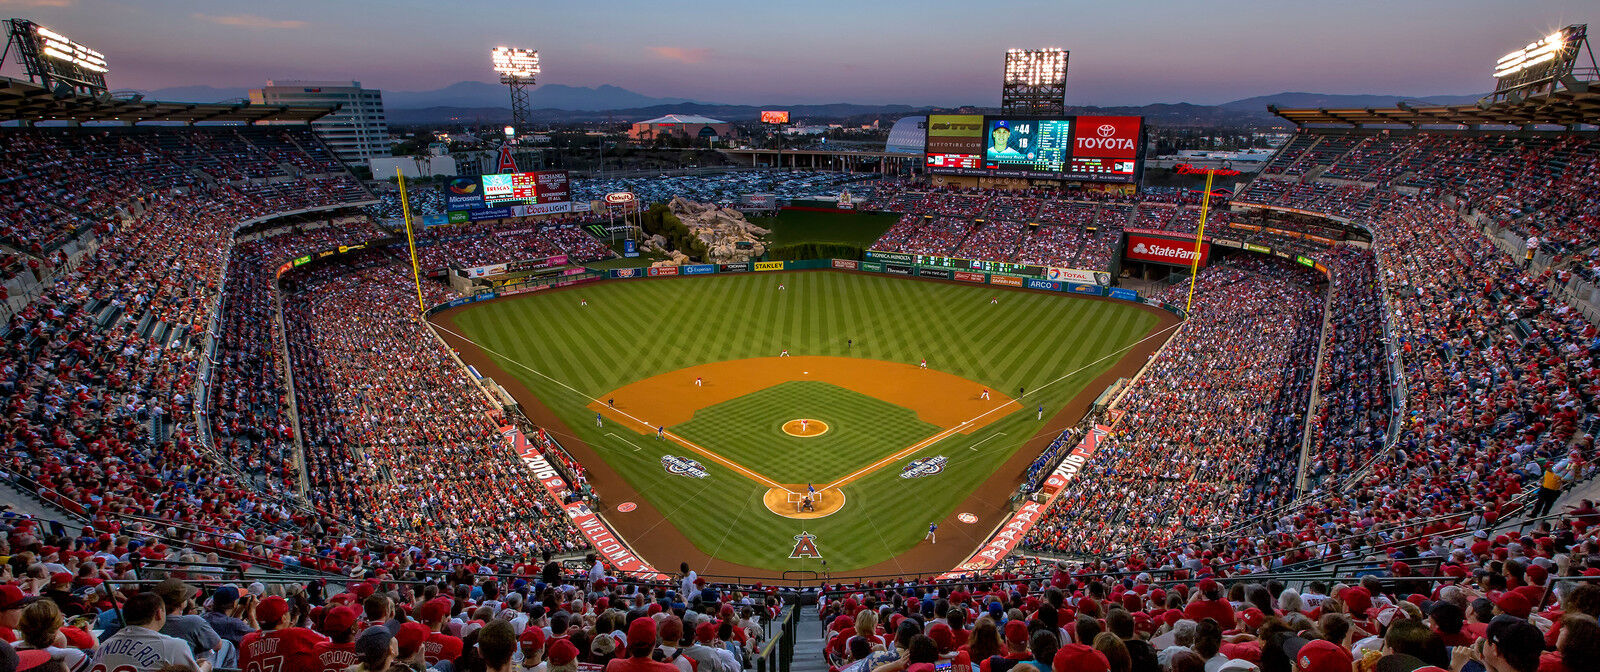 Toronto Blue Jays at Los Angeles Angels Tickets (Trout Nutcracker)